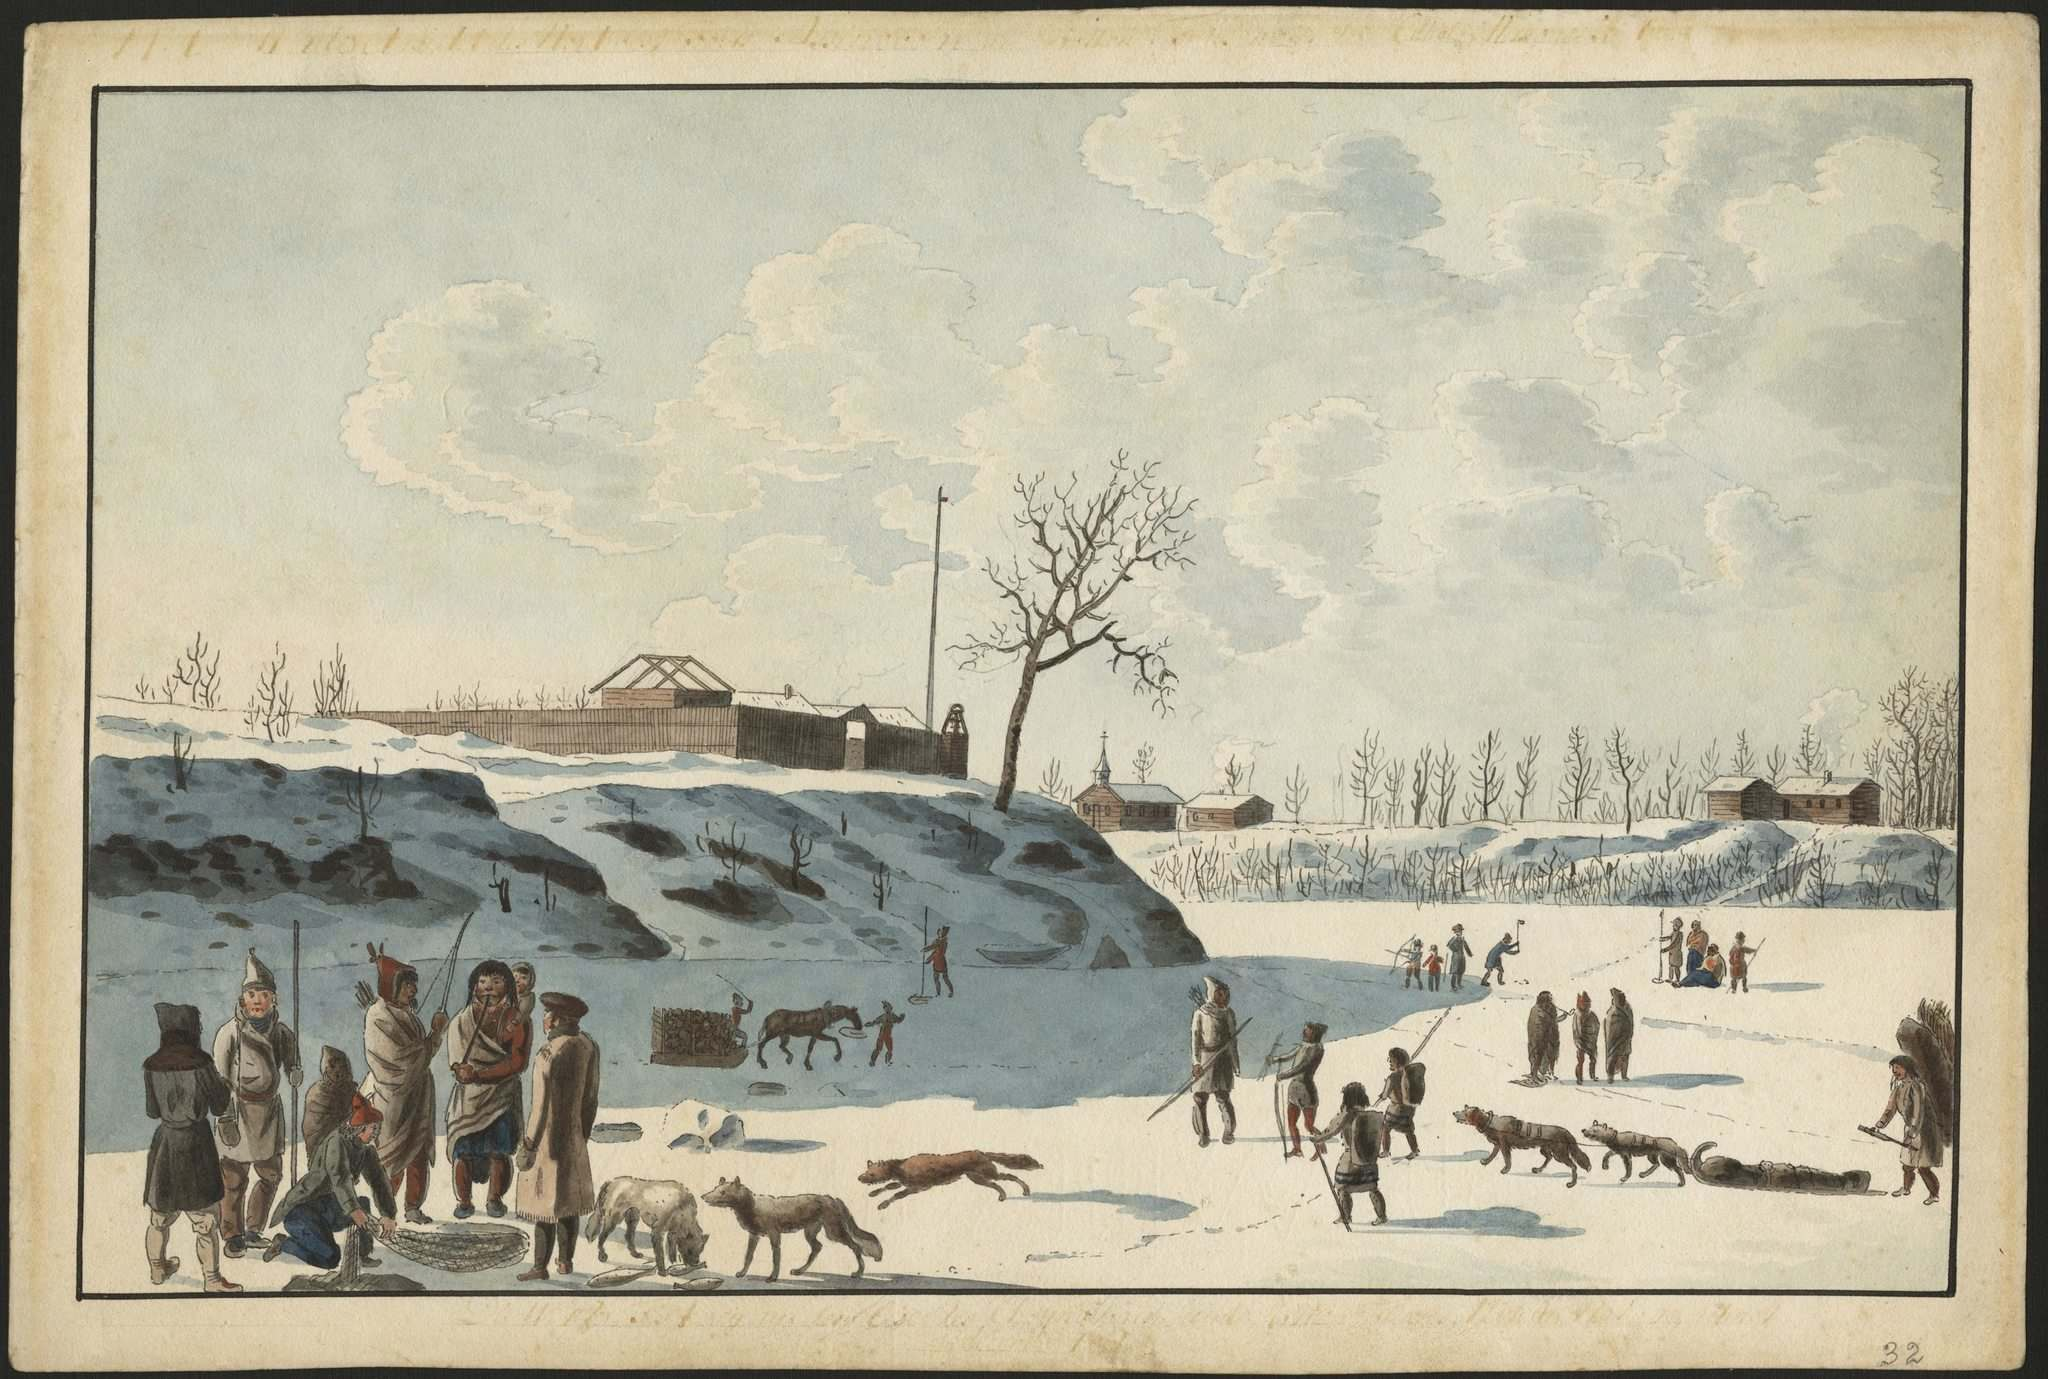 Winter fishing on ice of Assynoibain & Red River, by Peter Rindisbacher (1821).</p>